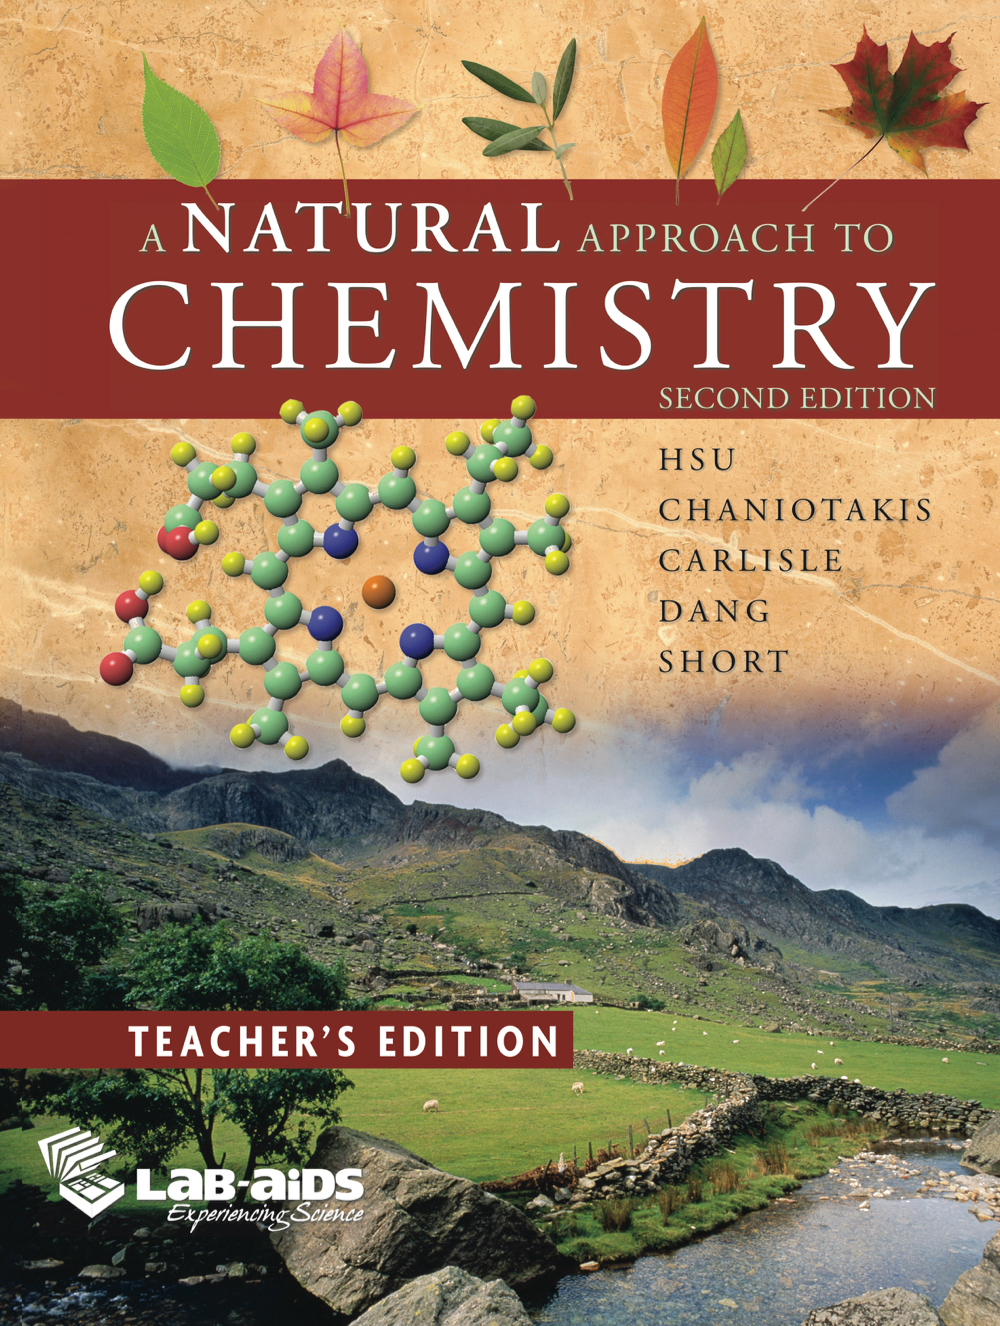 A Natural Approach To Chemistry, Second Edition Teacher's Edition